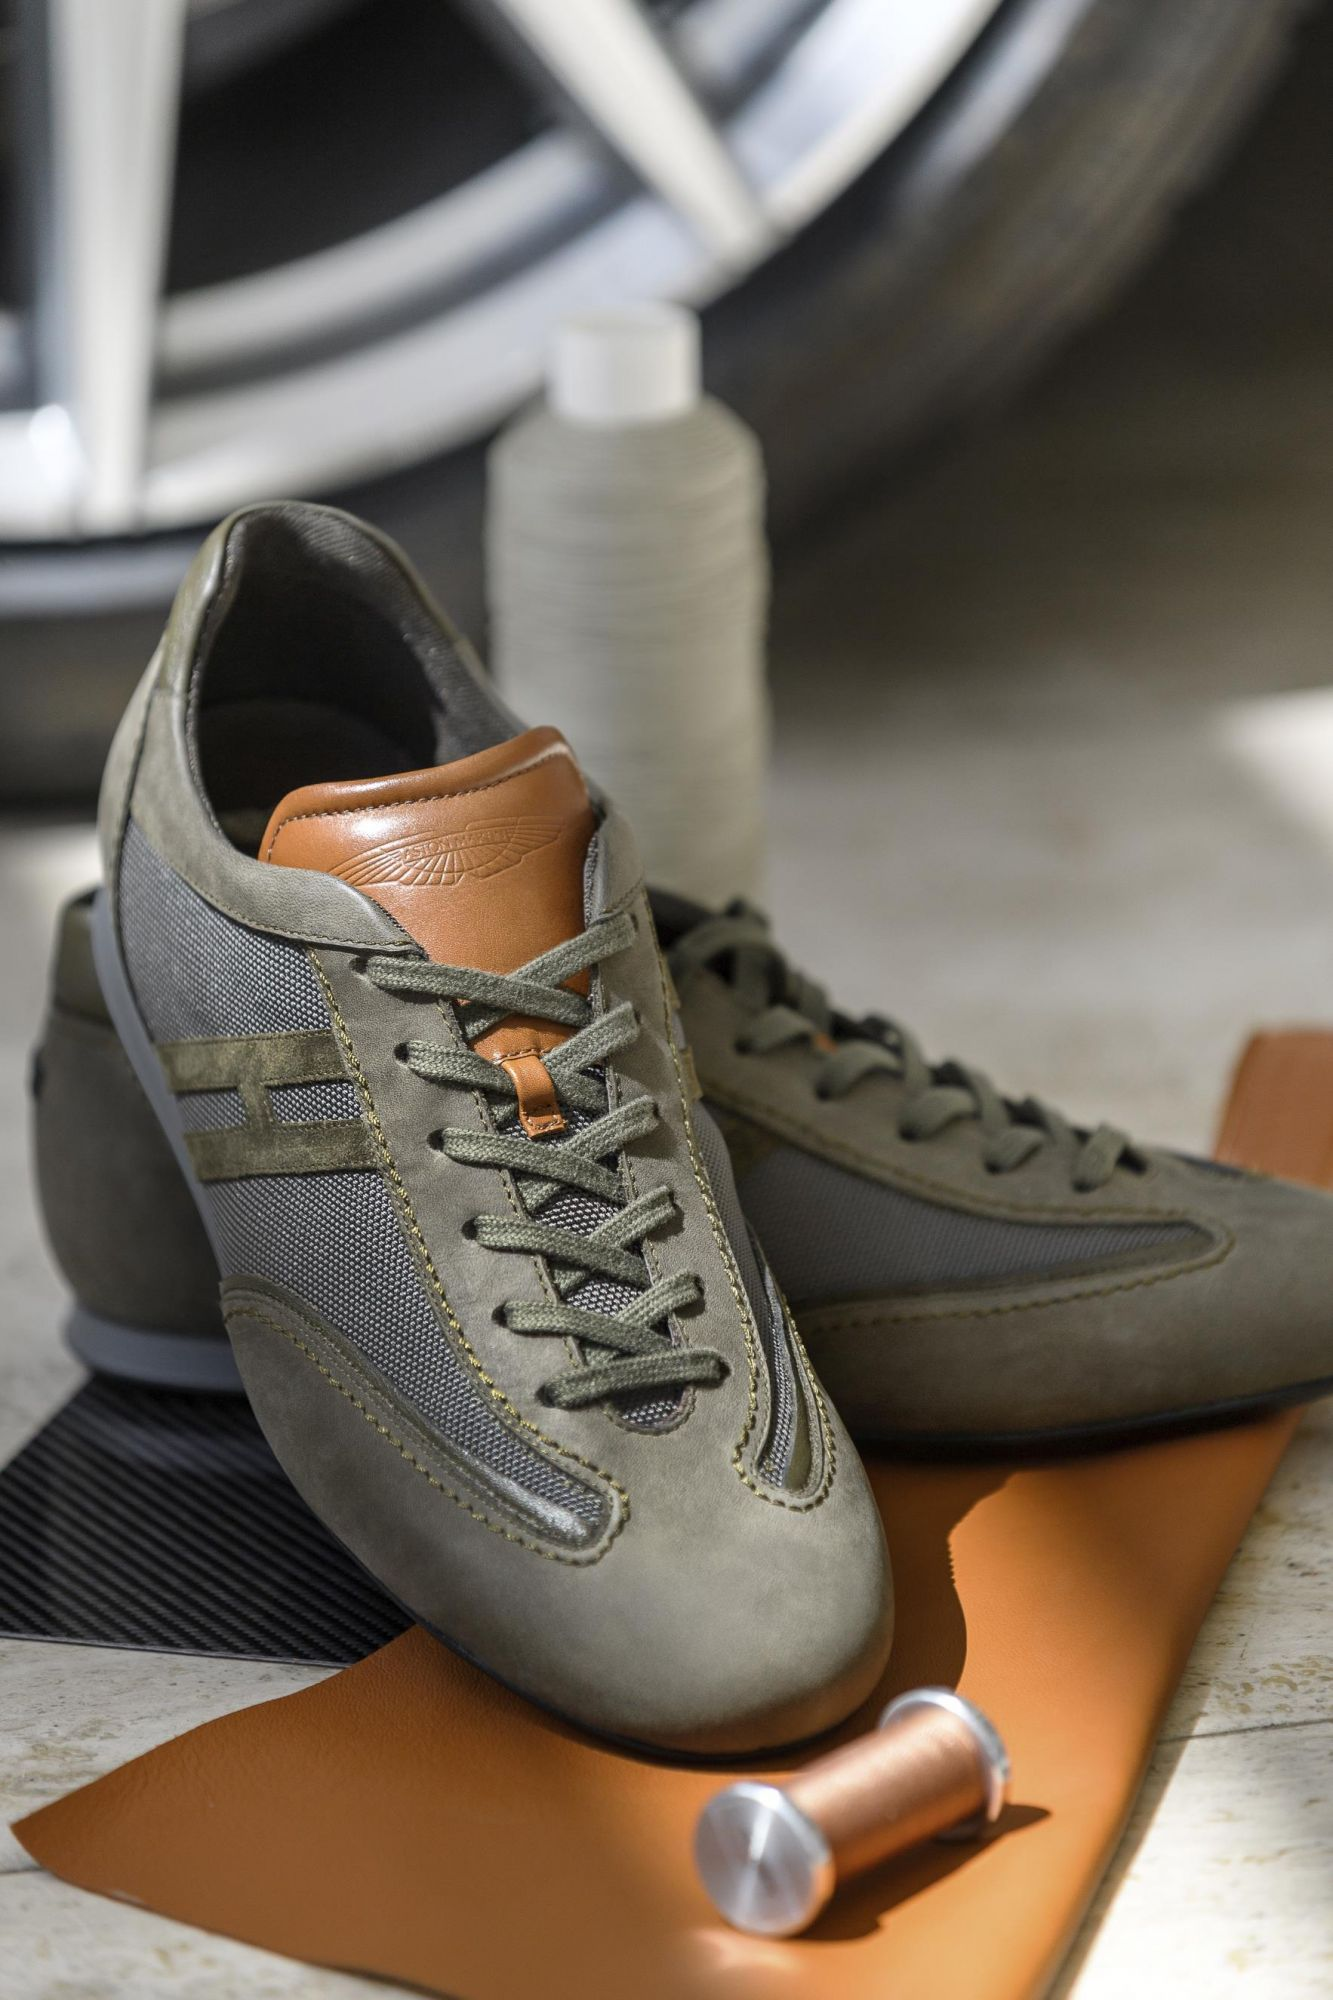 You Can Order Sneakers From Aston Martin Soon